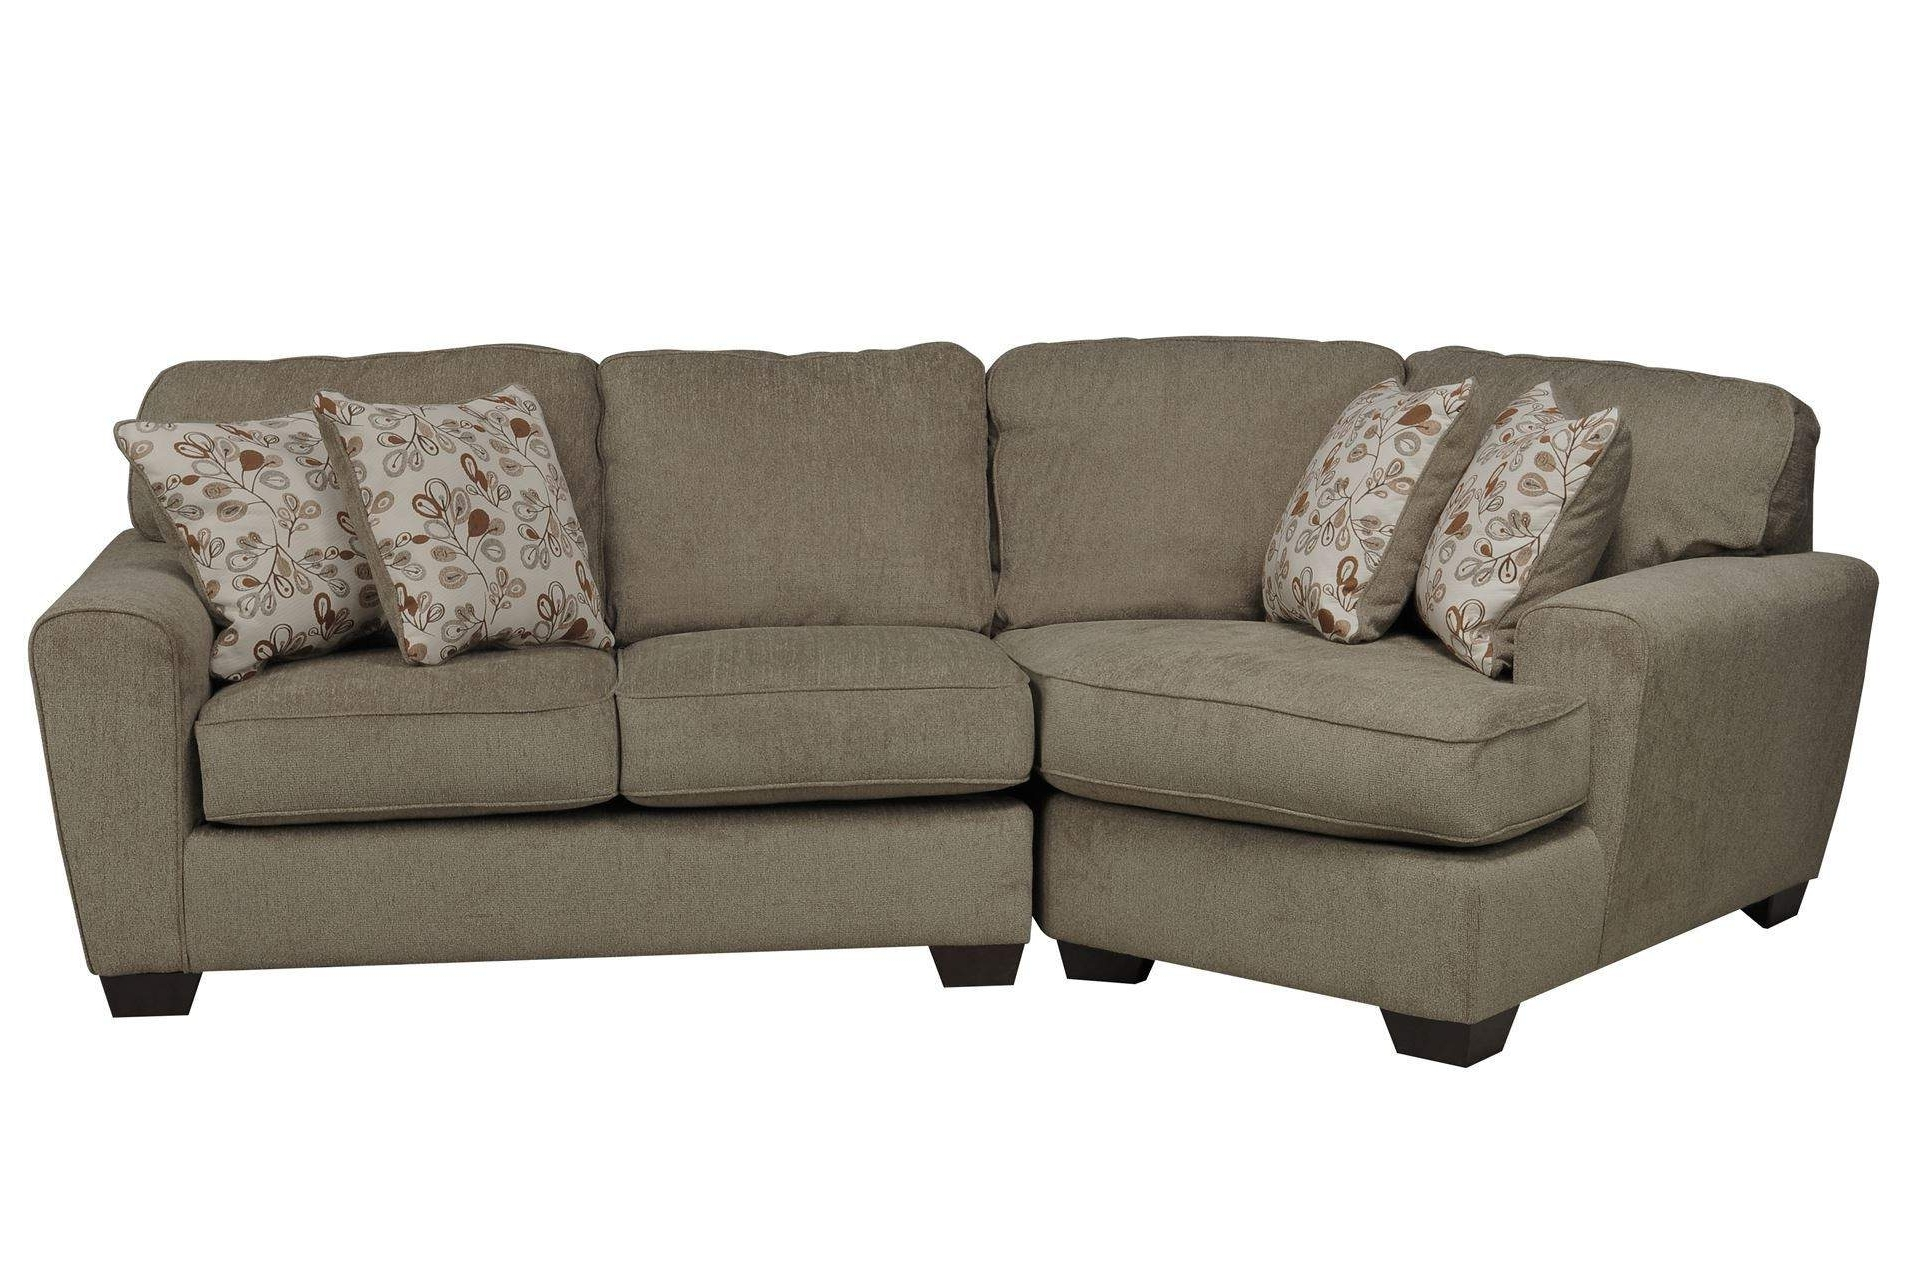 Sectional Sofa With Cuddler Chaise – Nrhcares Pertaining To Favorite Sectional Sofas With Cuddler Chaise (View 13 of 15)